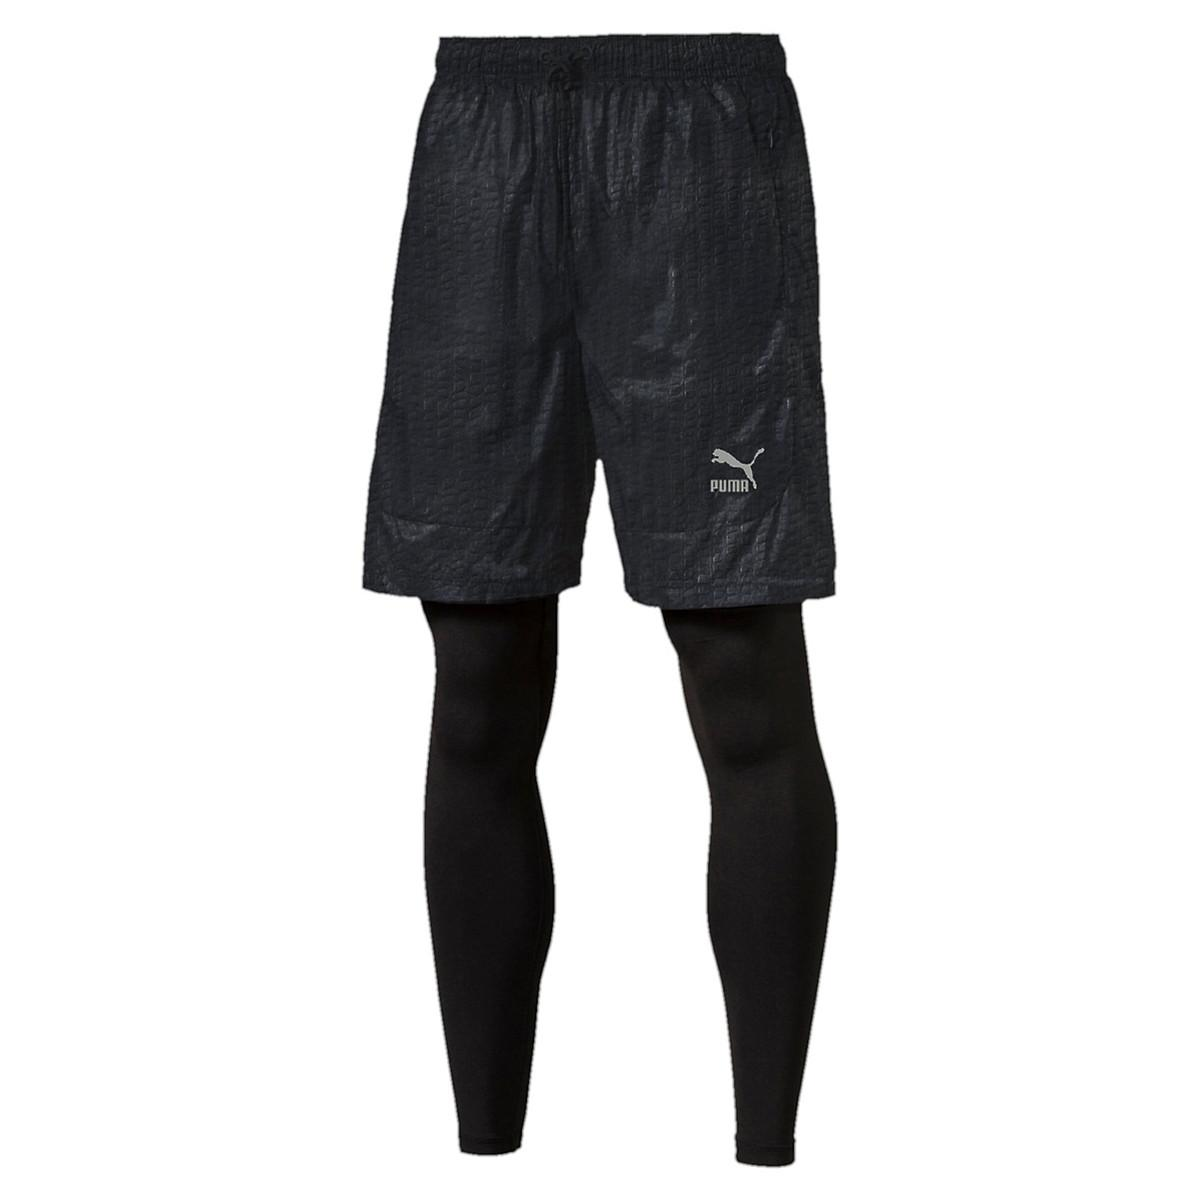 Homme short collant